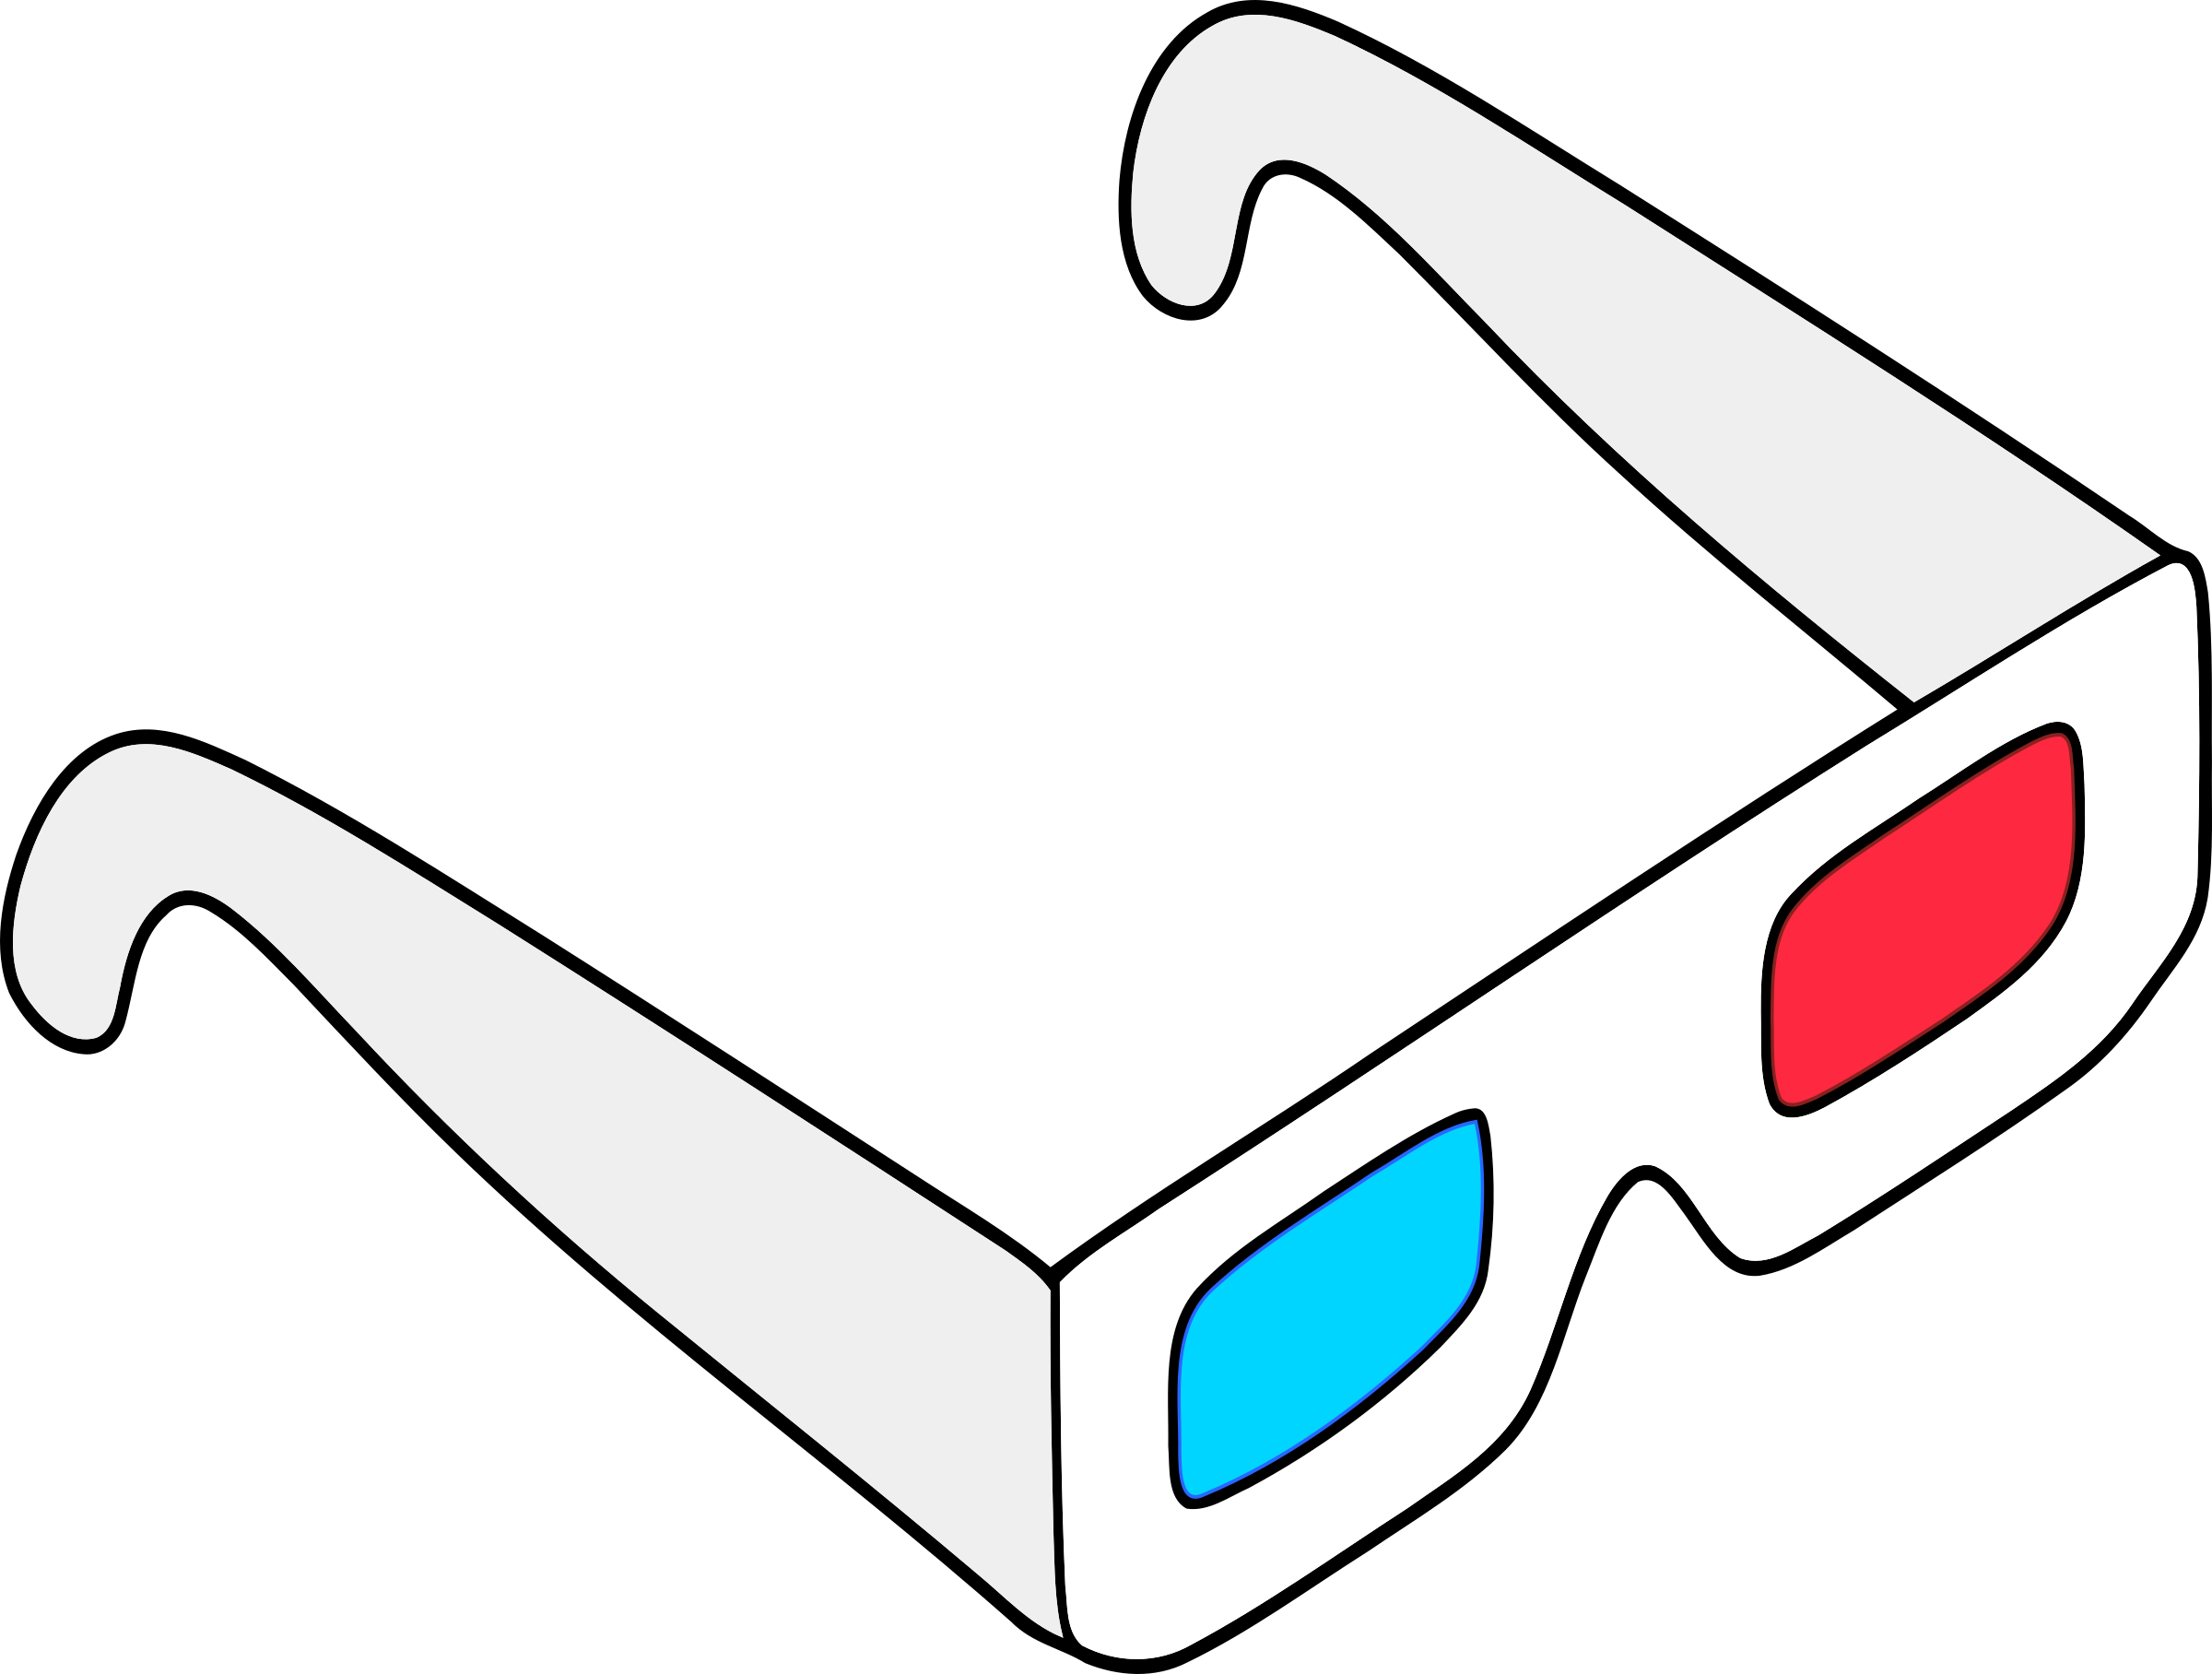 Glasses clipart movie. Anaglyph big image png